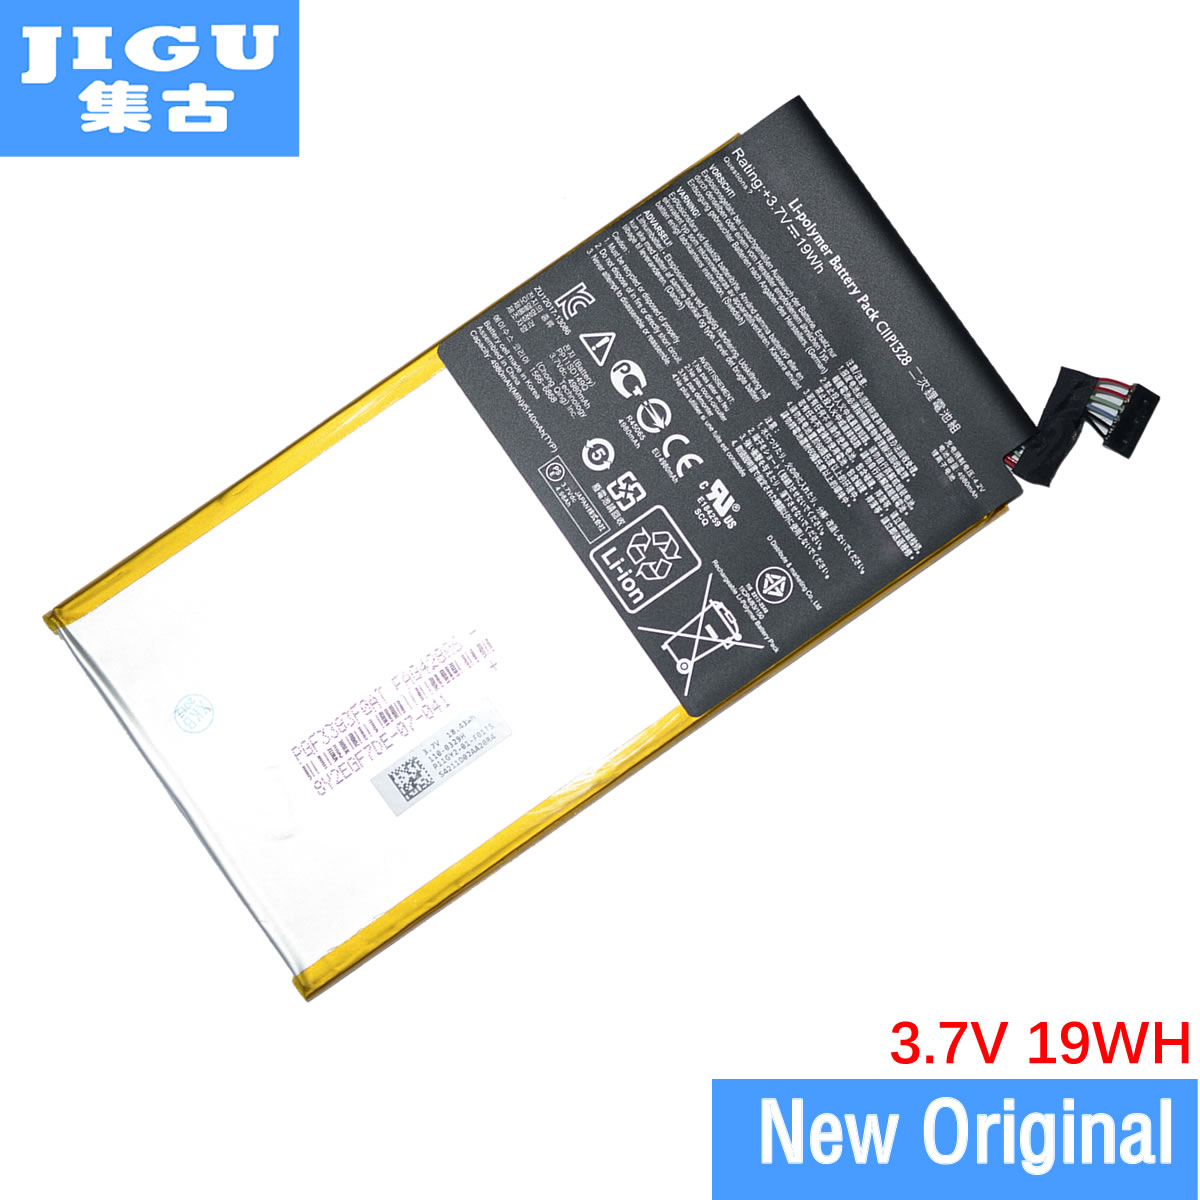 JIGU Original Laptop Battery C11P1328 For ASUS TF103CG TF103CX TF103C TF103CG TF103CX TF103CX-1A010A TF103CX-1B013A